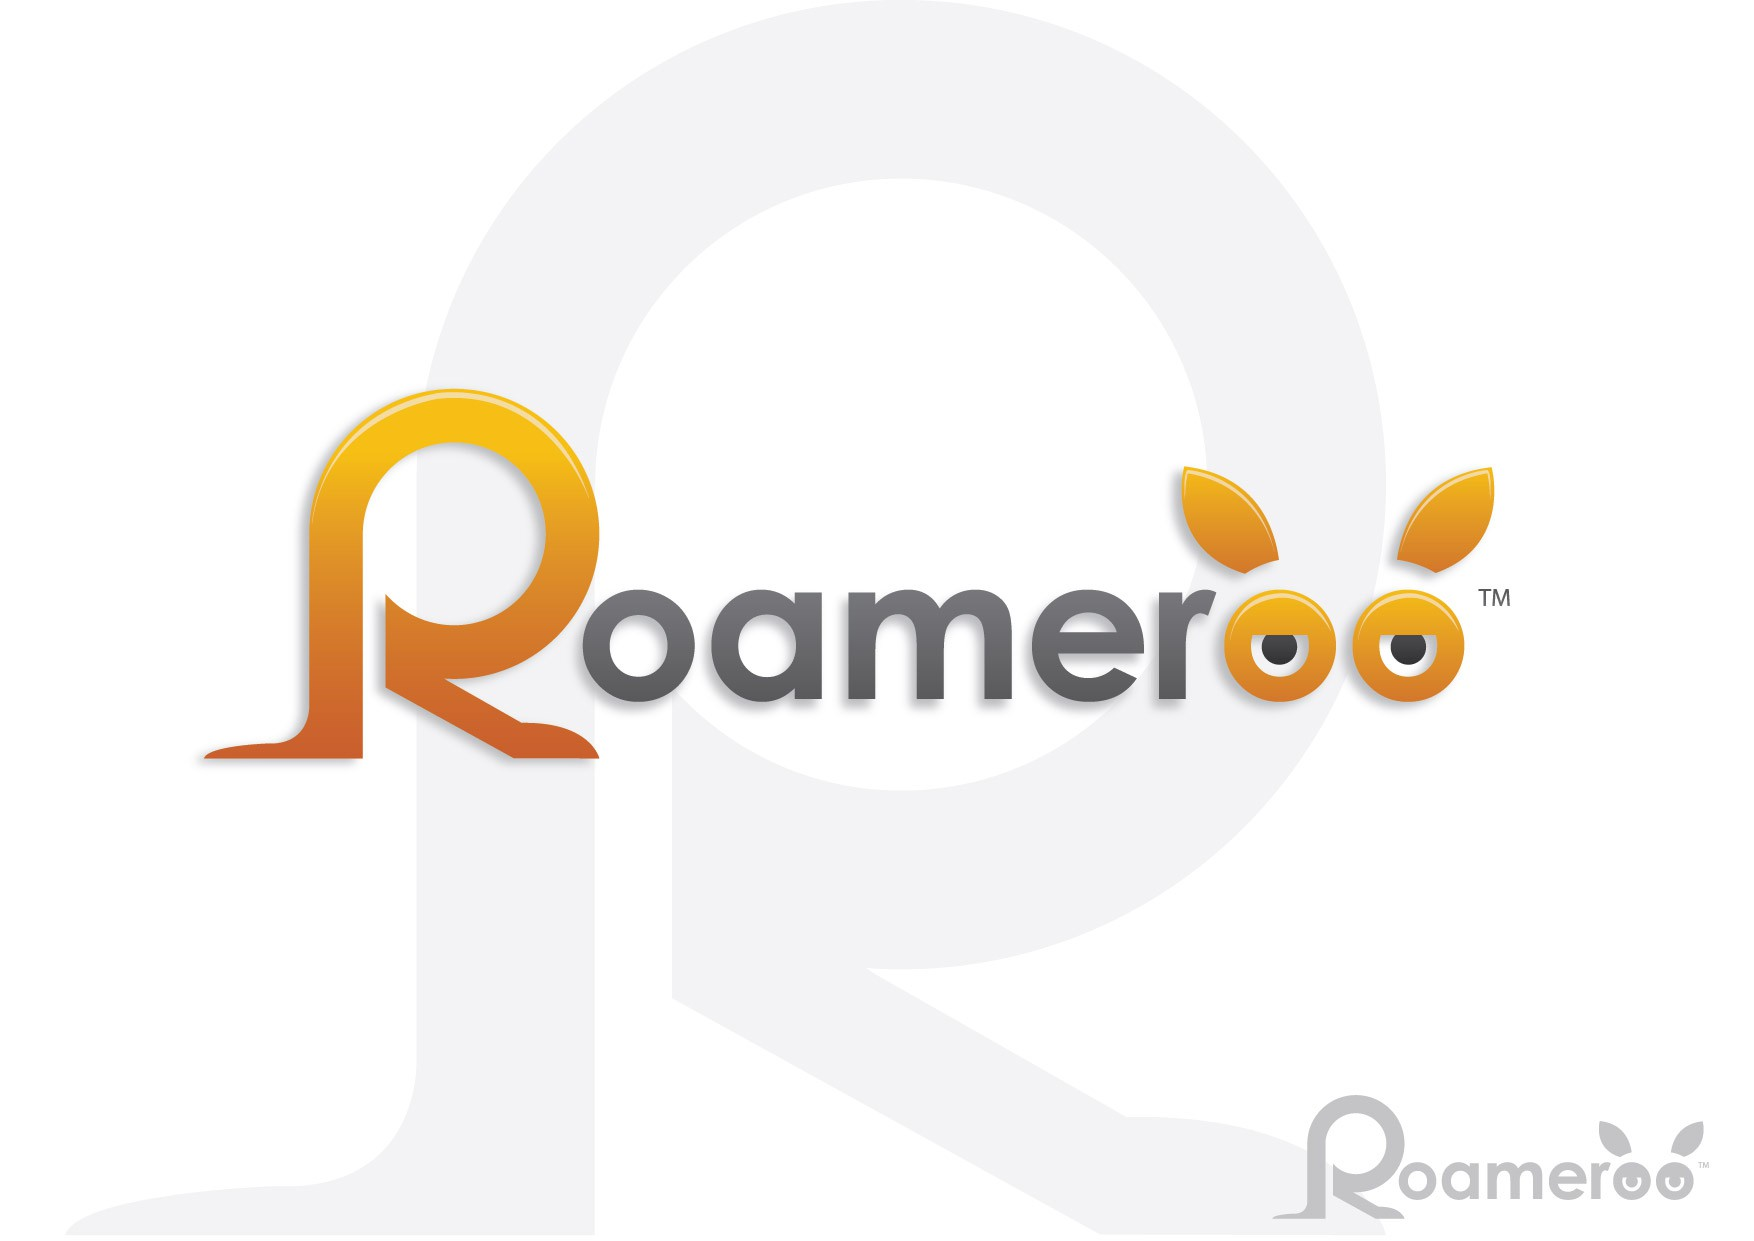 New logo wanted for Roameroo